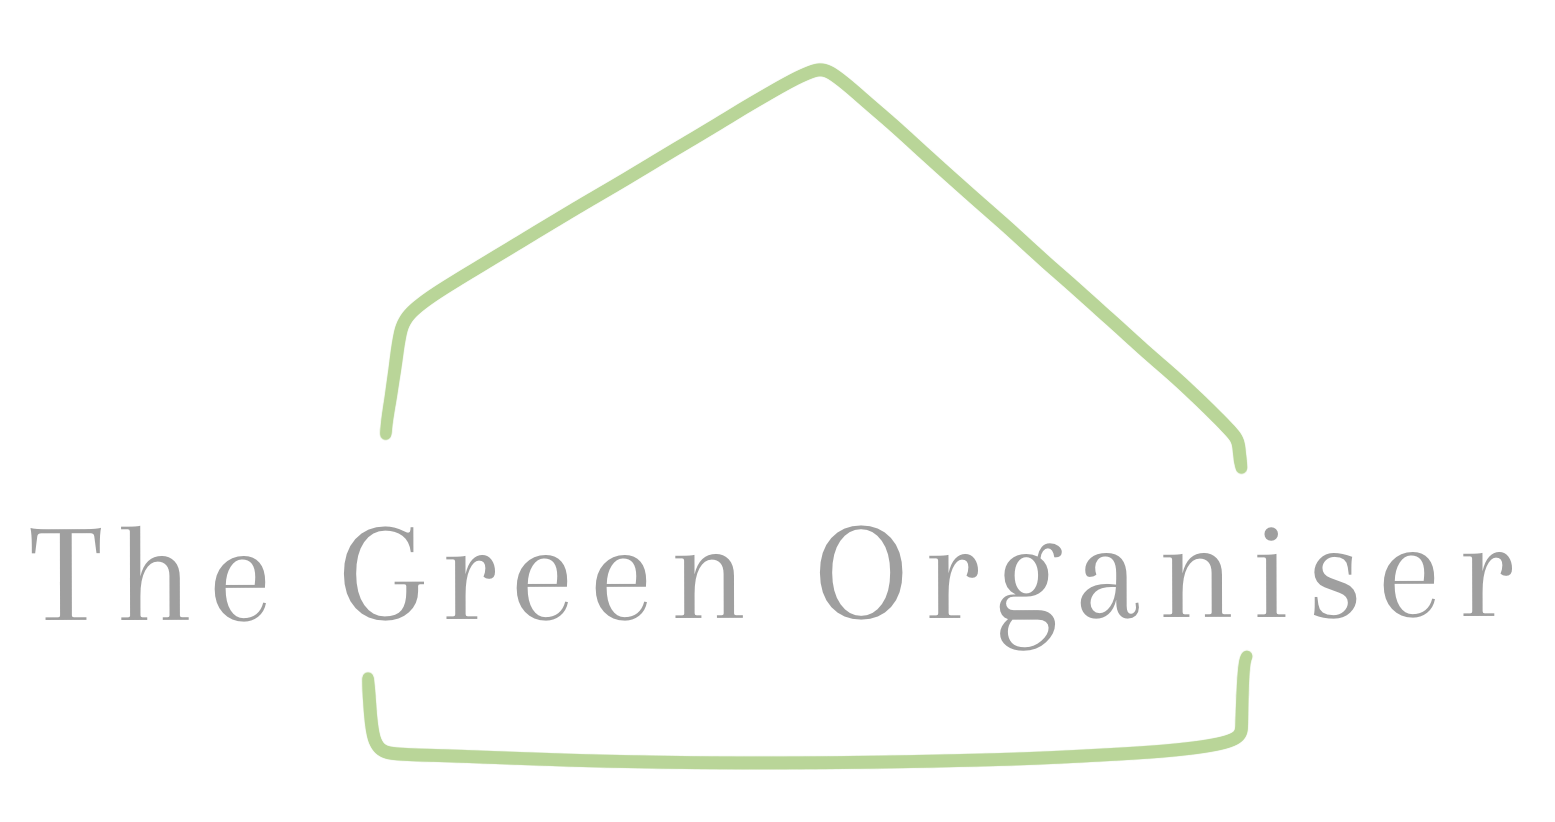 Contacter The Green Organiser